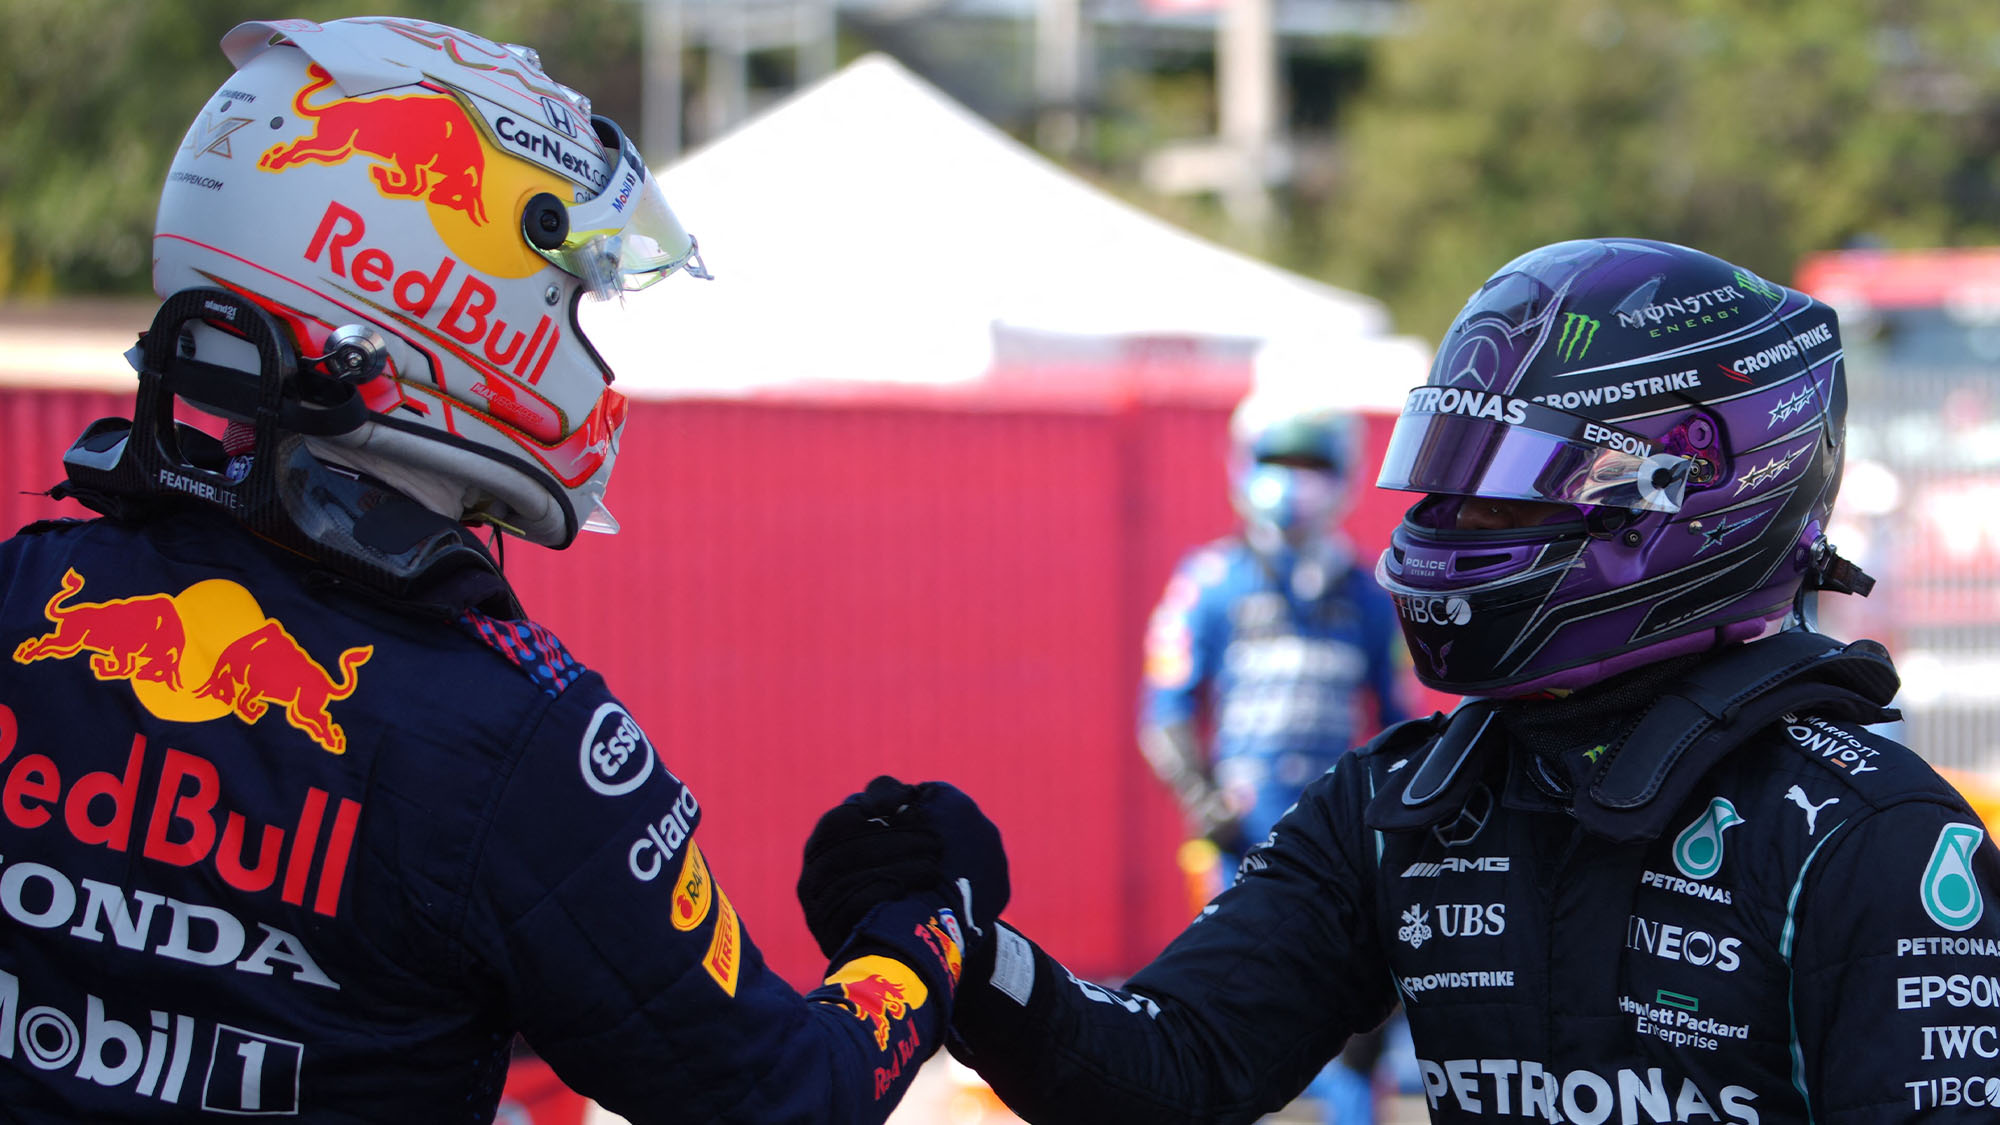 Mercedes' British driver Lewis Hamilton (R) shakes hands with Red Bull's Dutch driver Max Verstappen after the qualifying session at the Circuit de Catalunya on May 8, 2021 in Montmelo on the outskirts of Barcelona ahead of the Spanish Formula One Grand Prix. (Photo by Emilio Morenatti / POOL / AFP) (Photo by EMILIO MORENATTI/POOL/AFP via Getty Images)